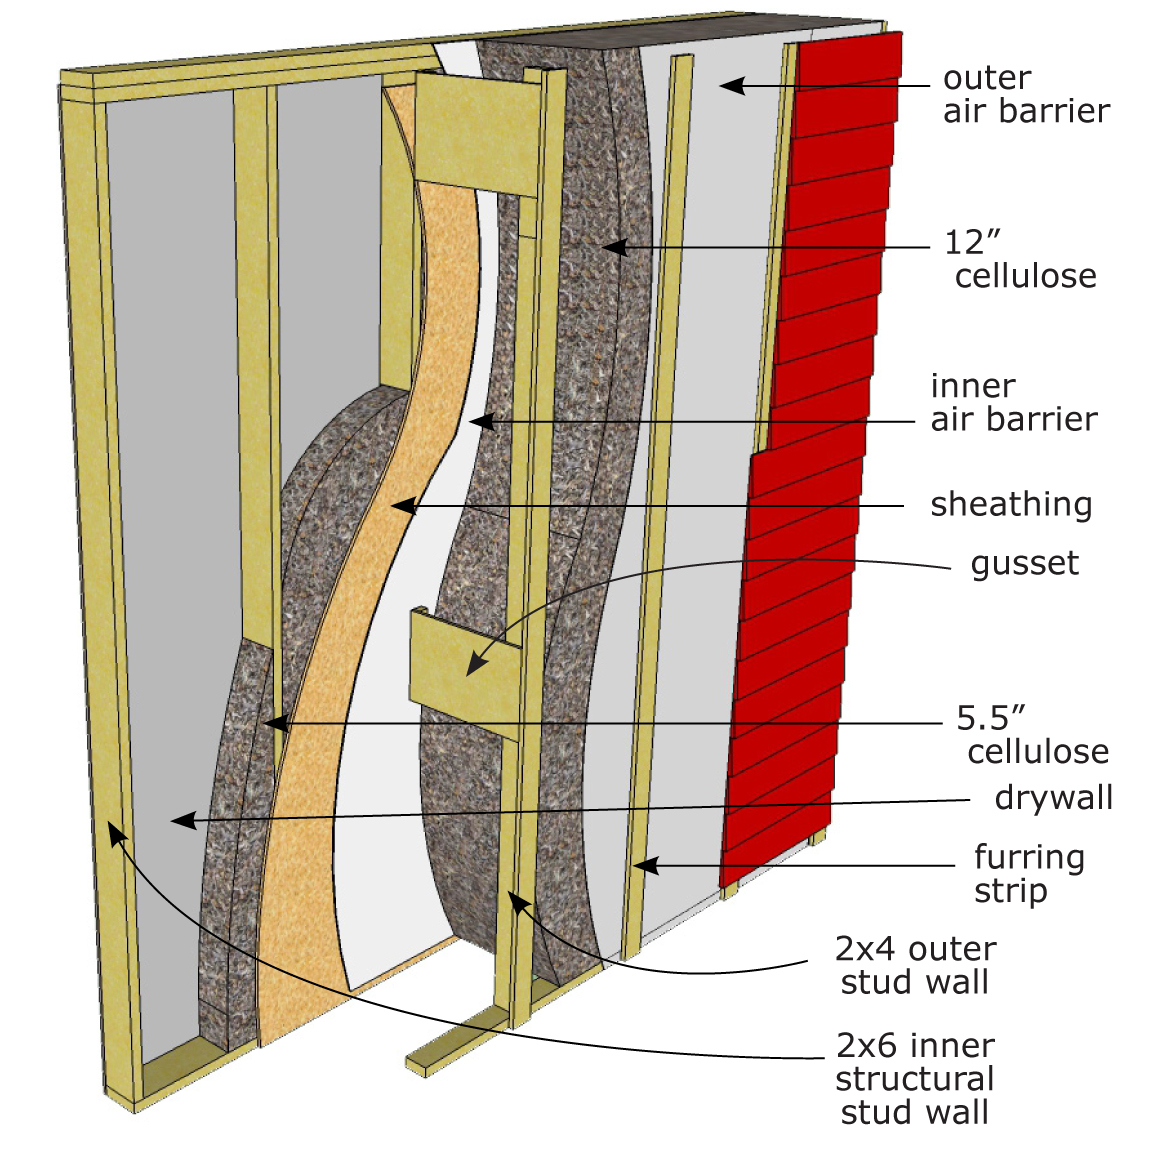 The Arctic Wall Is An Airtight Double Wall System Using Cellulose Insulation  And Is Designed